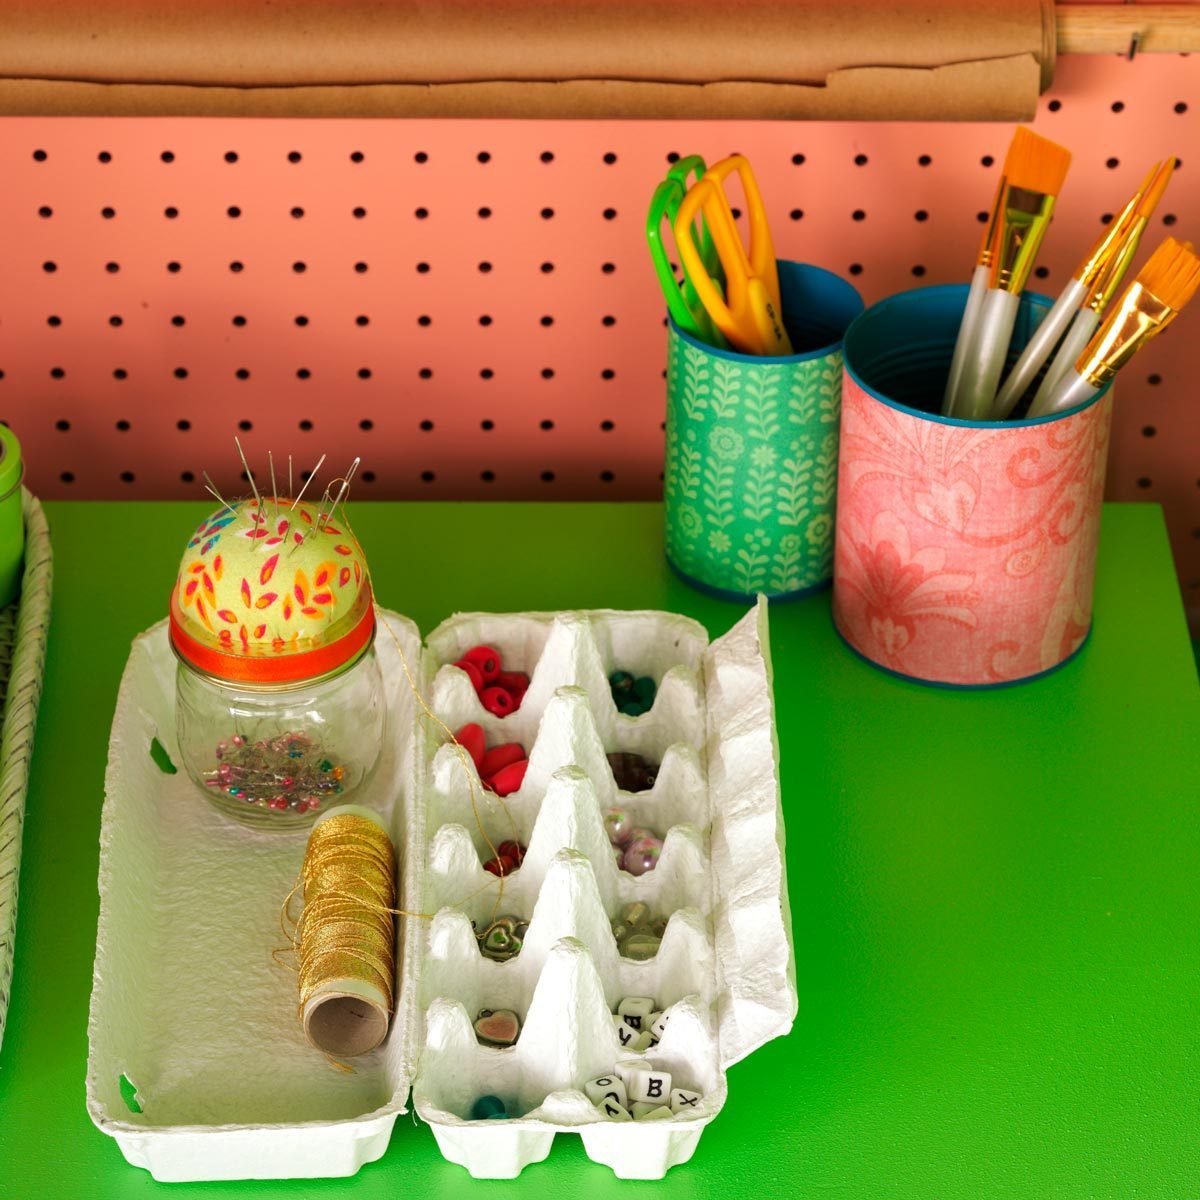 egg carton small objects beads organization